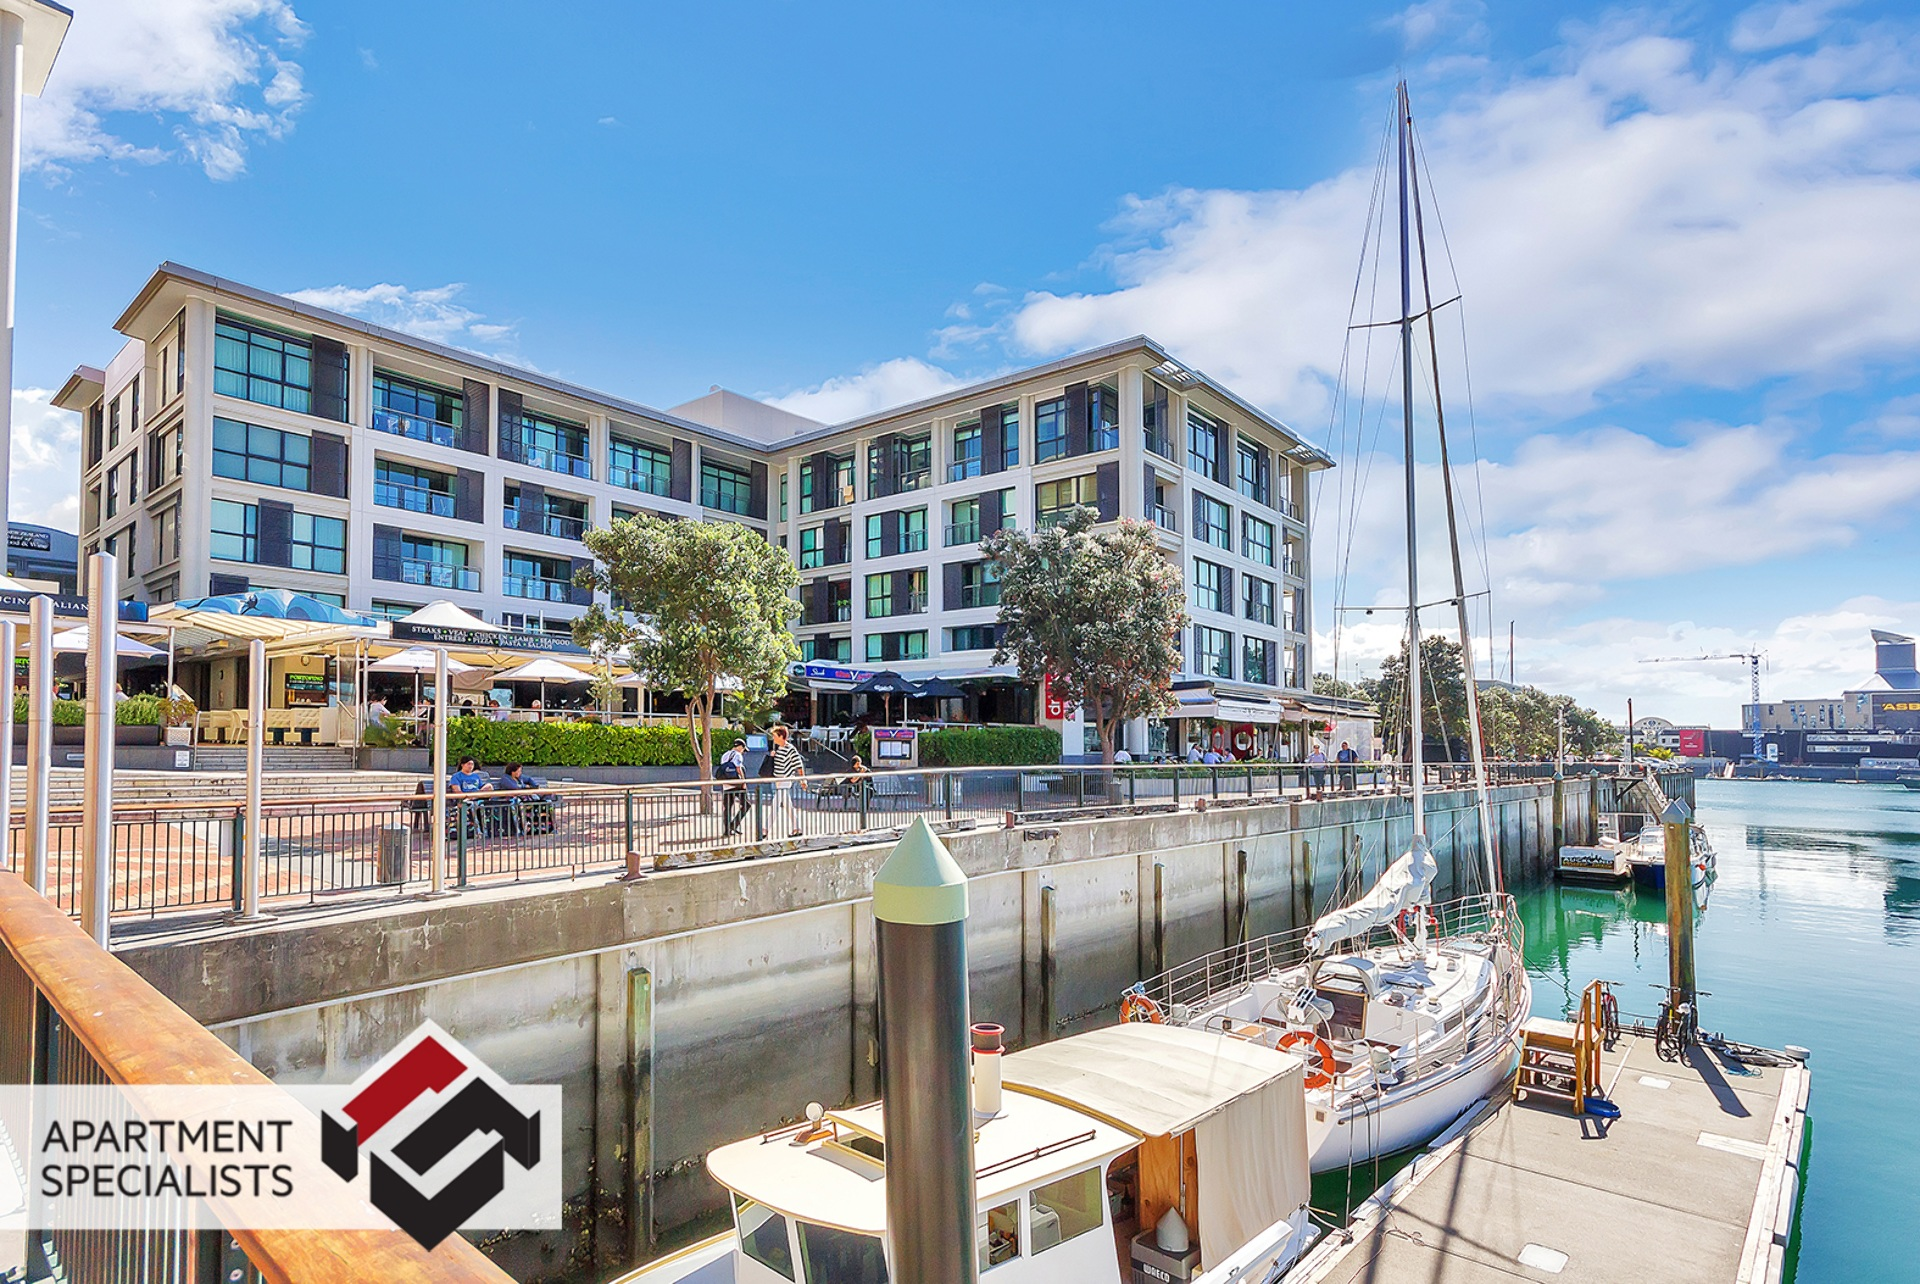 15 | 99 Customs Street West, City Centre | Apartment Specialists